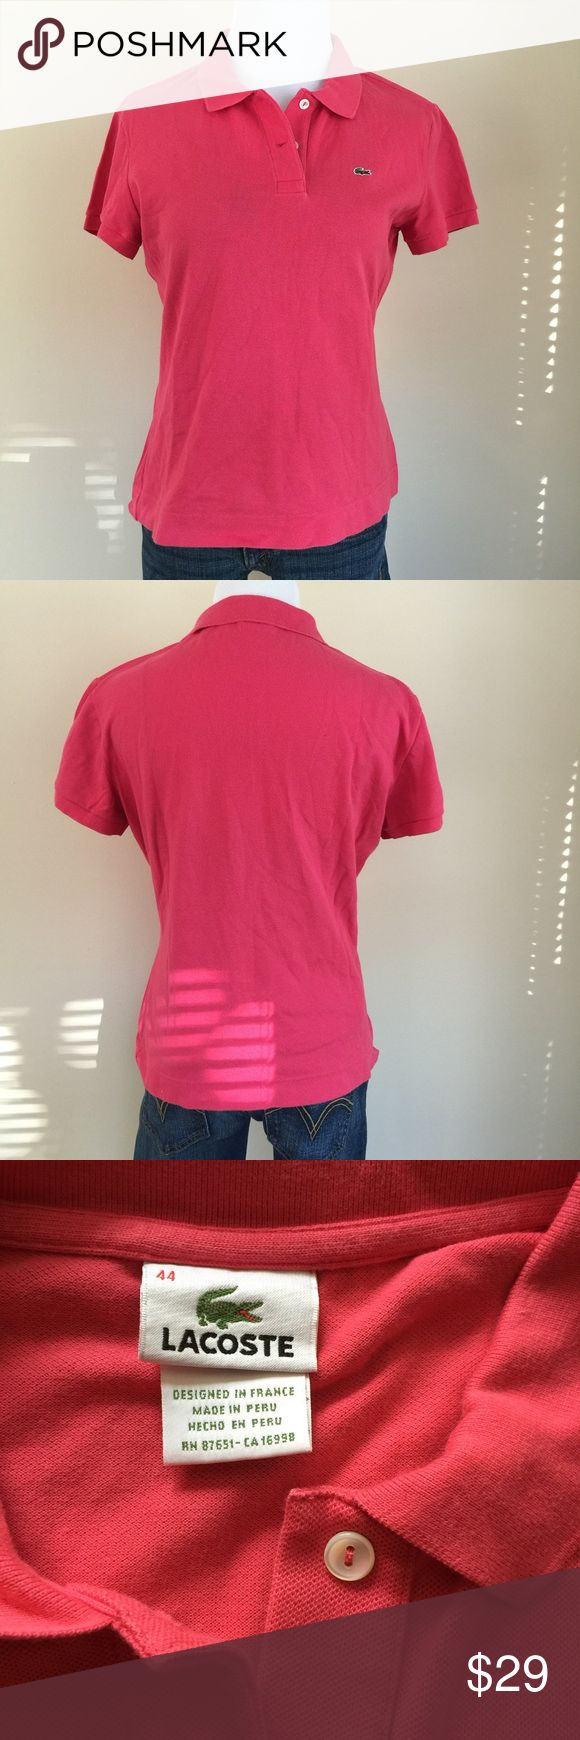 "Lacoste bubblegum pink polo sz XL/44 Lacoste bubblegum pink polo shirt, size 44.  Per Lacoste's ladies polo shirt size chart, 44 is an XL.  Condition:  very good pre-loved.  Material:  94% cotton/6% elastane.  Measurements (approximate, taken laying flat):  length 21"", pit-to-pit 20"", flat waist 17"", flat hip/hem 19"", sleeve 6"". Lacoste Tops Button Down Shirts"